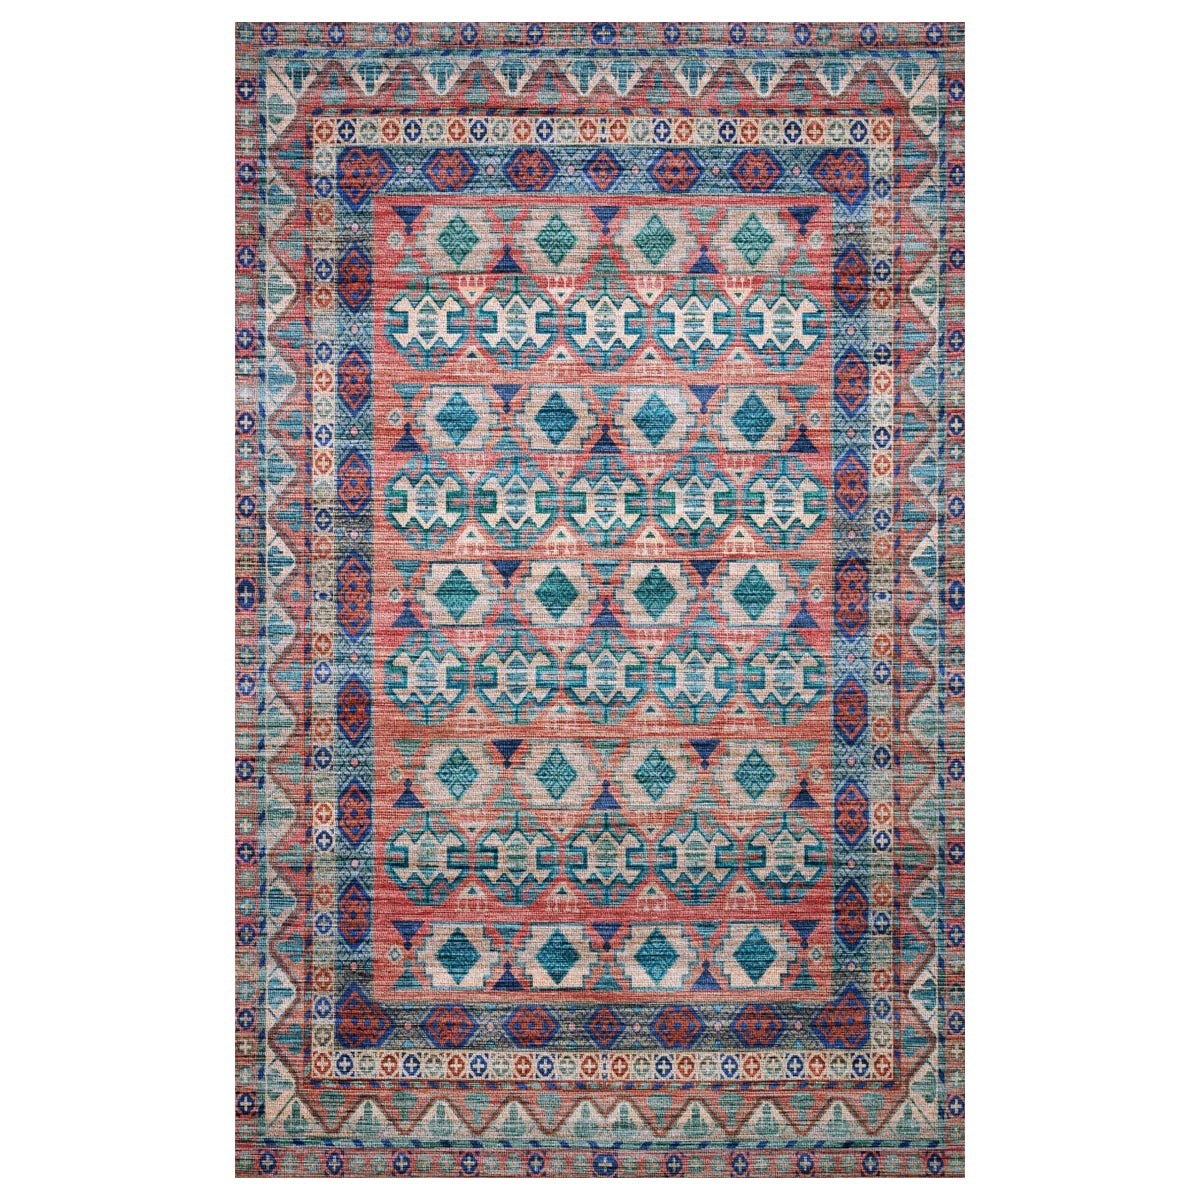 Upland Terracotta Sunset Rug - 3 x 5